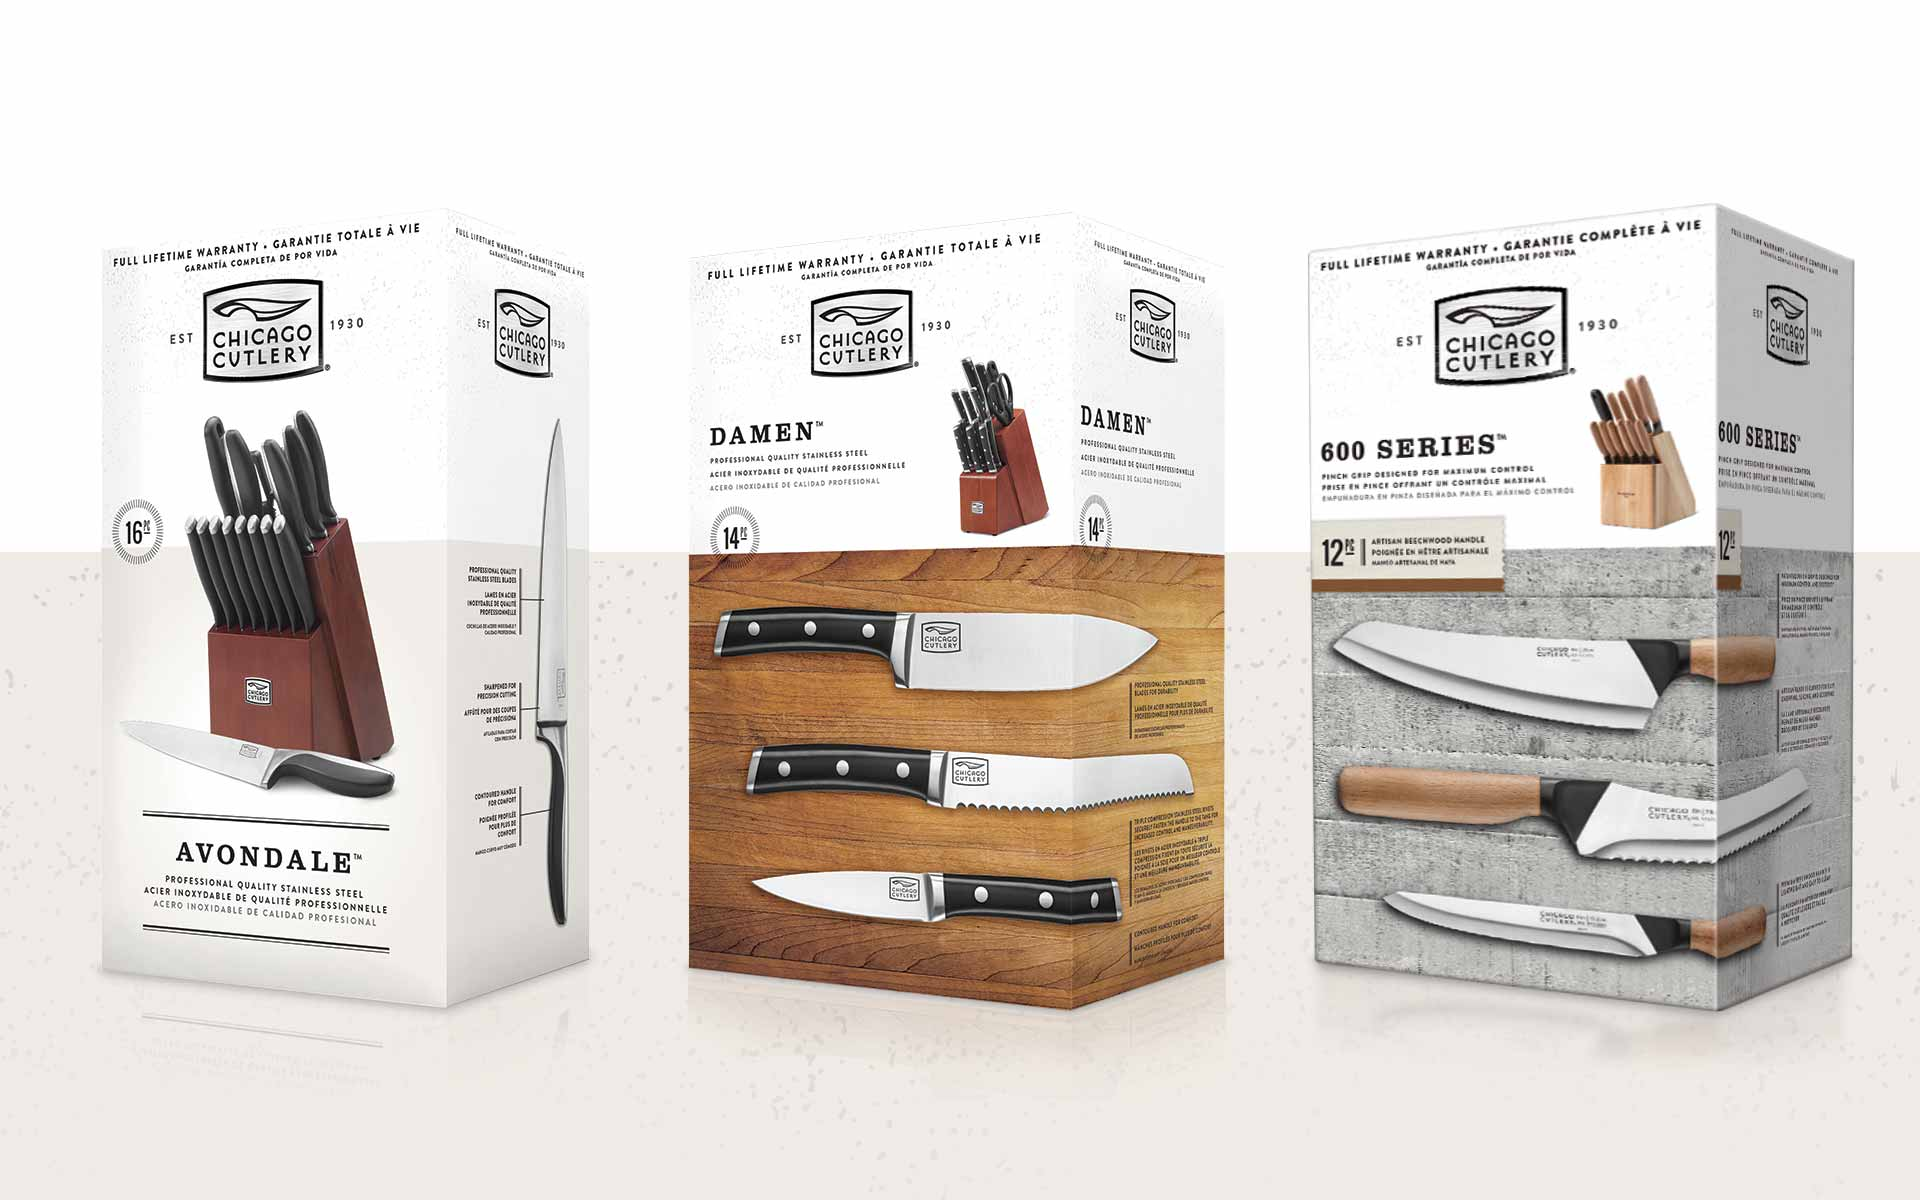 Chicago Cutlery - Brand Packaging Design